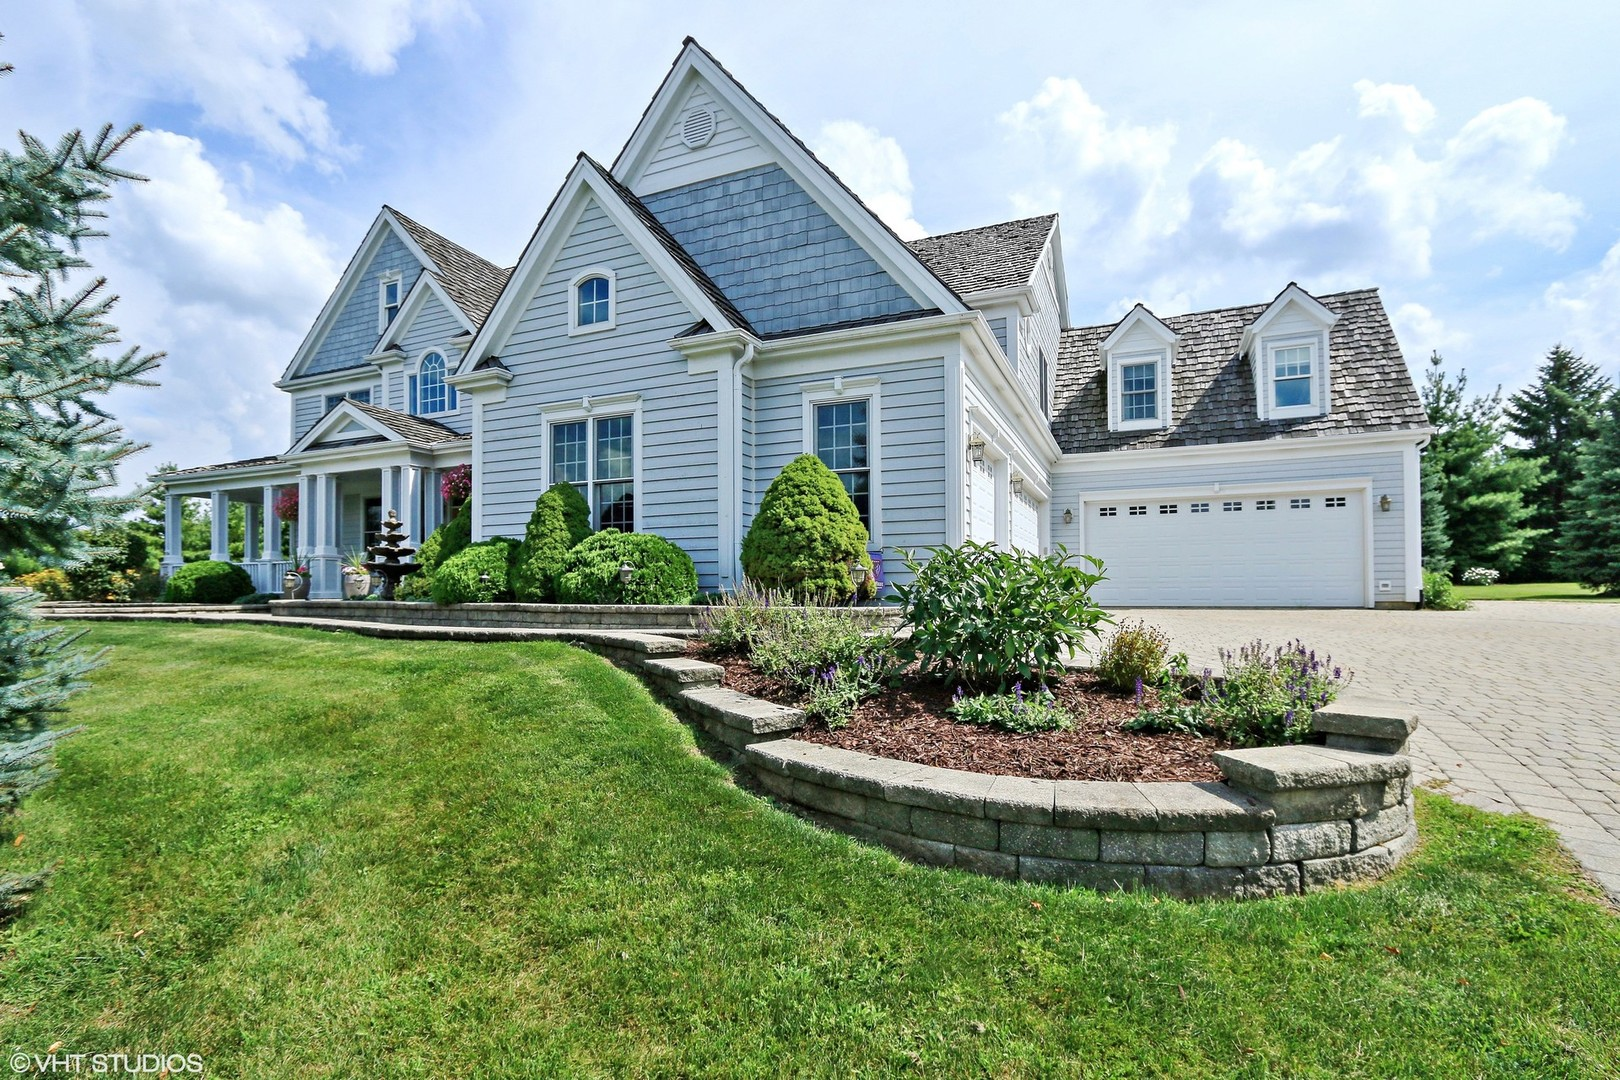 173 Sycamore Drive, Hawthorn Woods, Illinois 60047